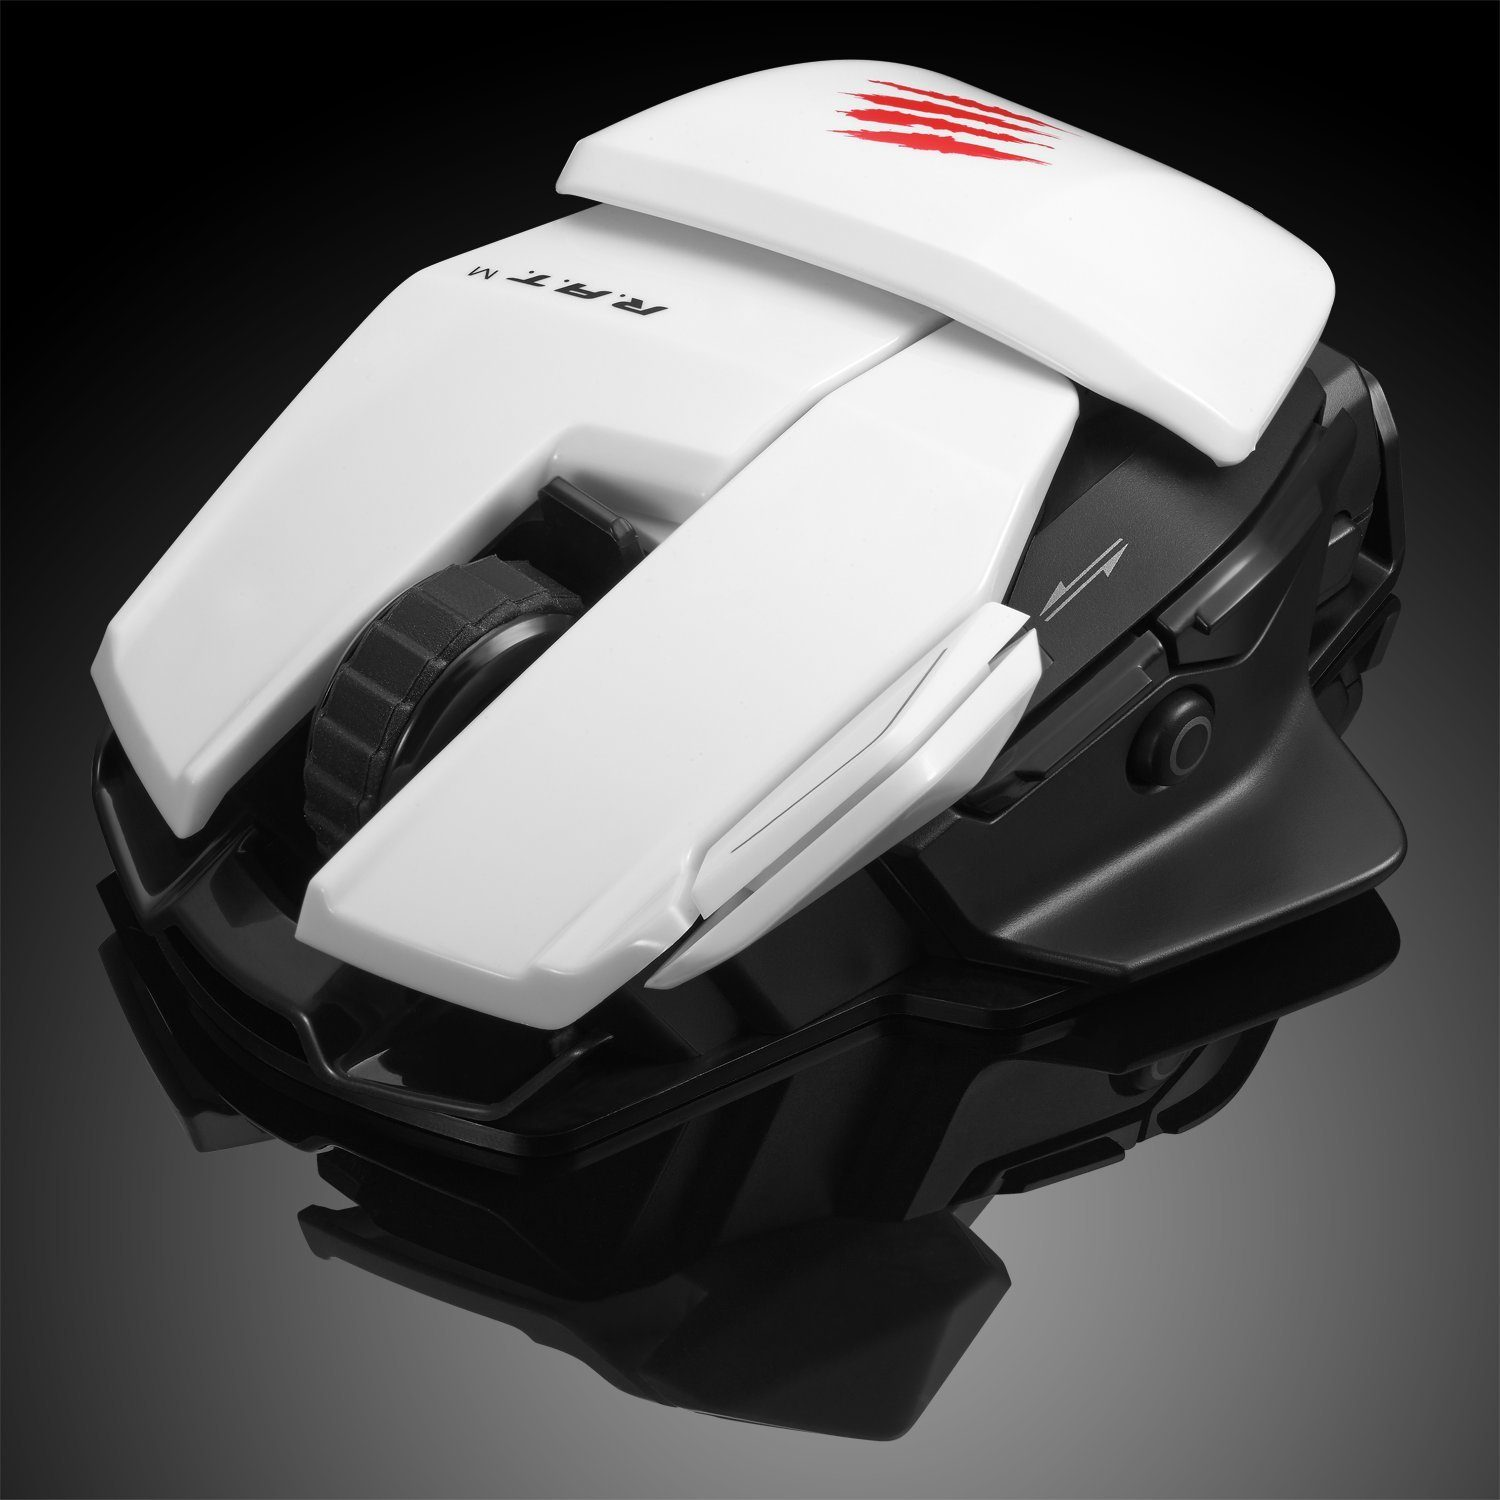 Mad Catz Mouse Office R.A.T.M weiss »(PC Tablet/Smartphone)«